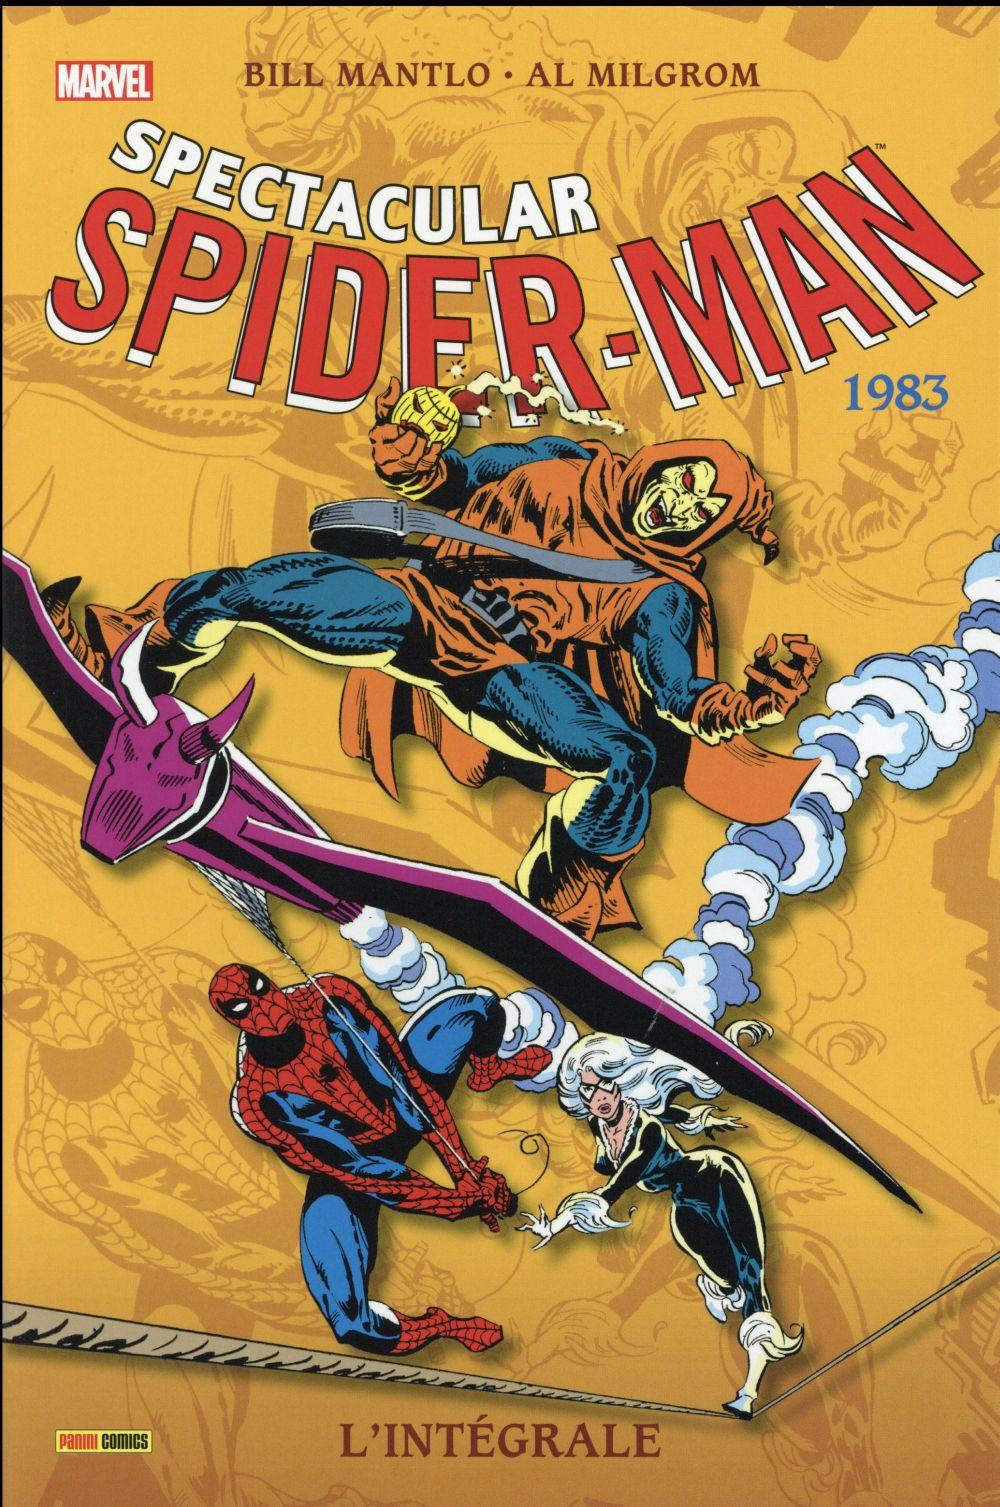 Spectacular Spider-Man ; INTEGRALE VOL.7 ; 1983  - Bill Mantlo  - Al Milgrom